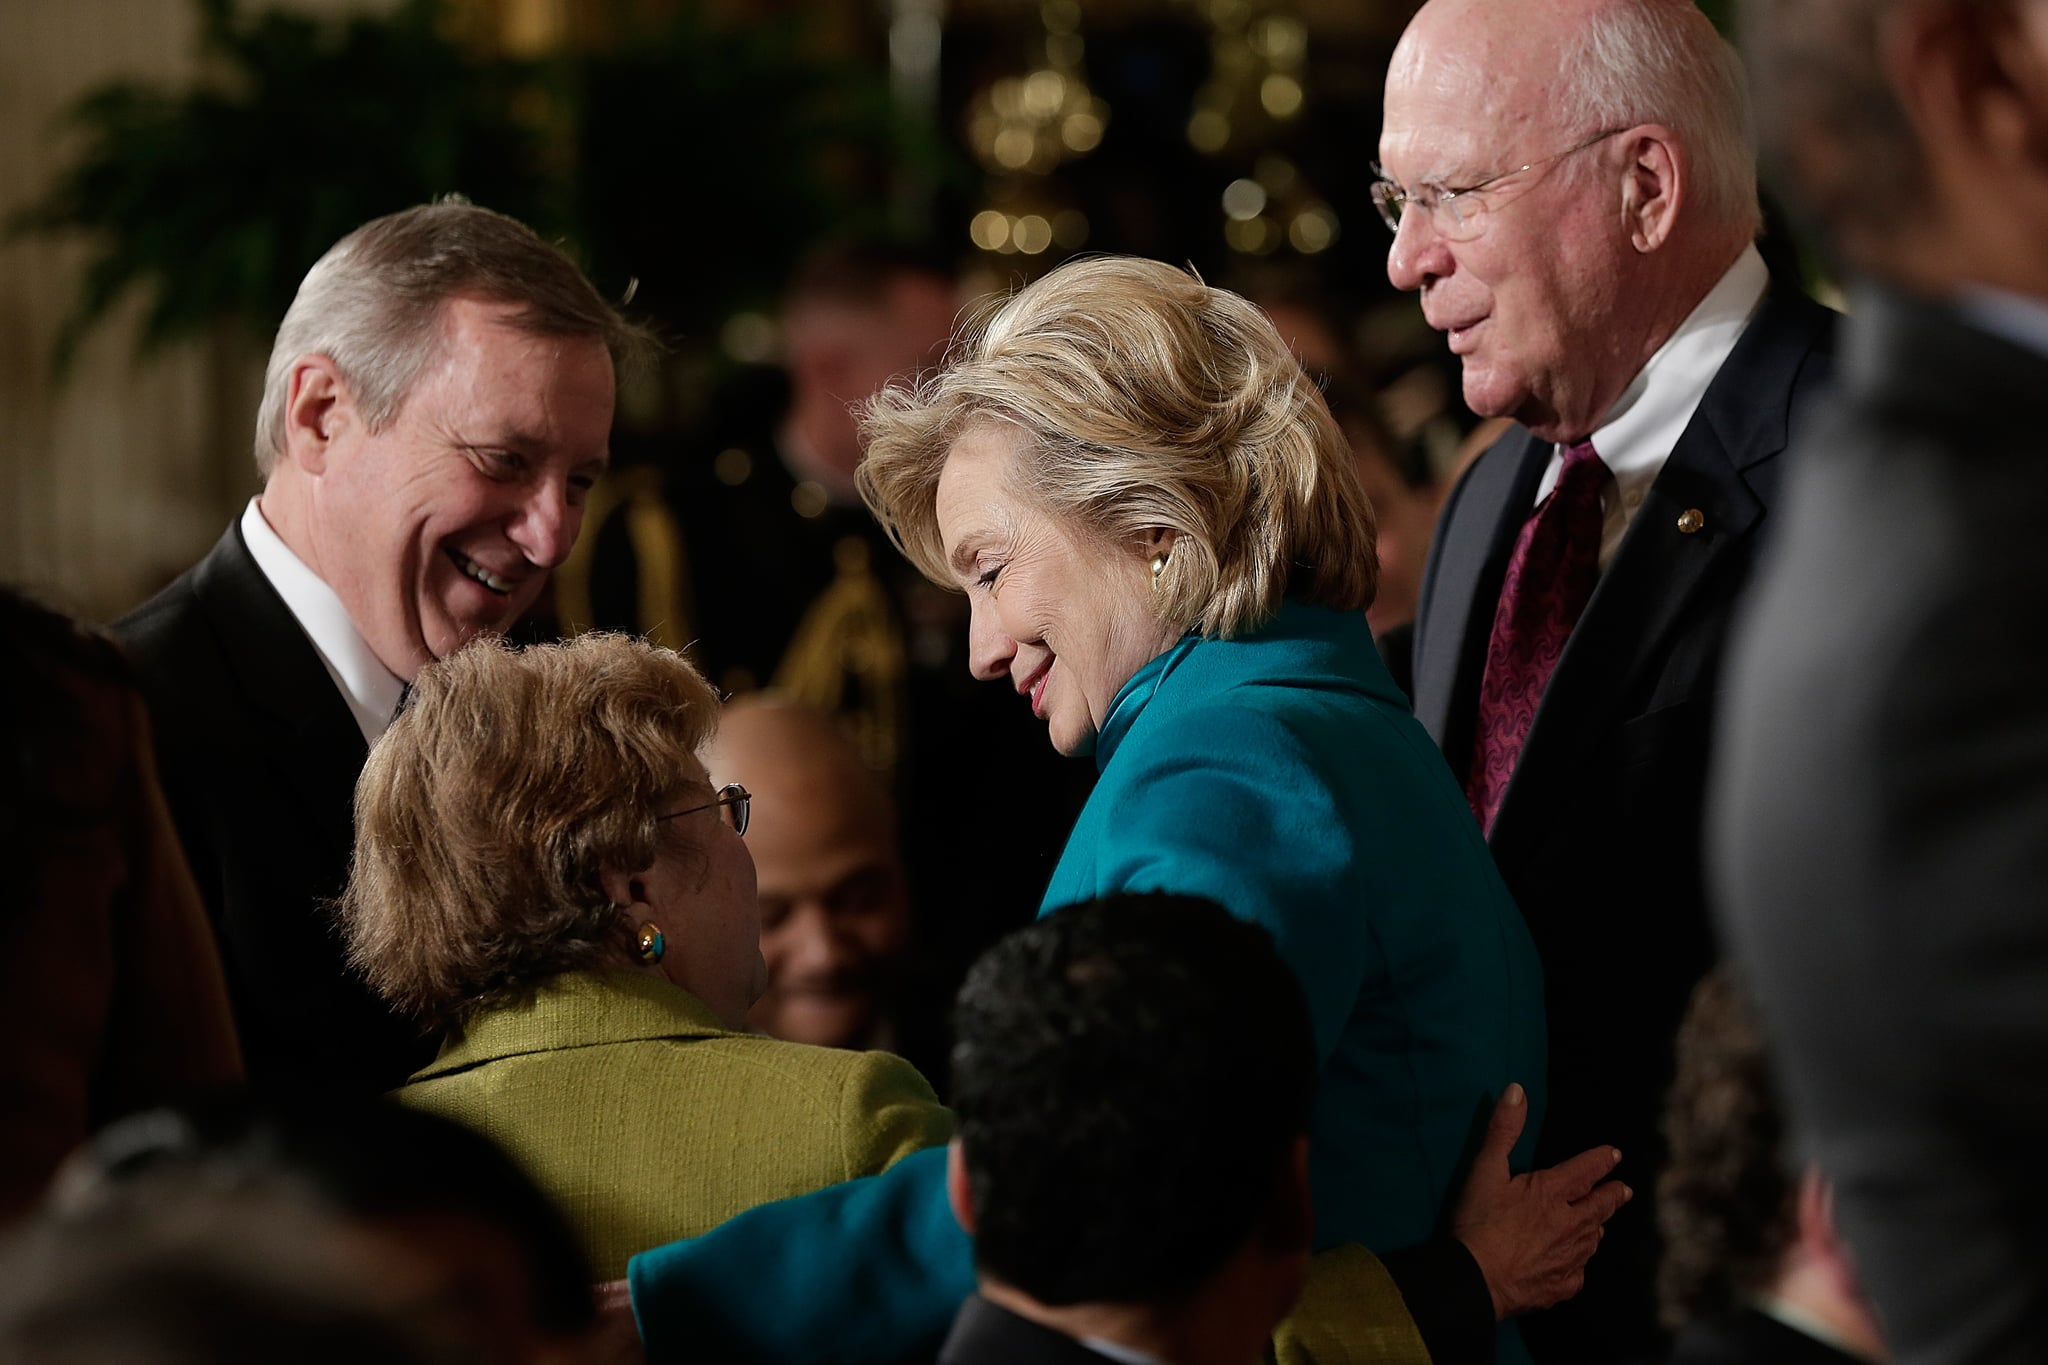 Hillary Clinton greeted guests at the event.